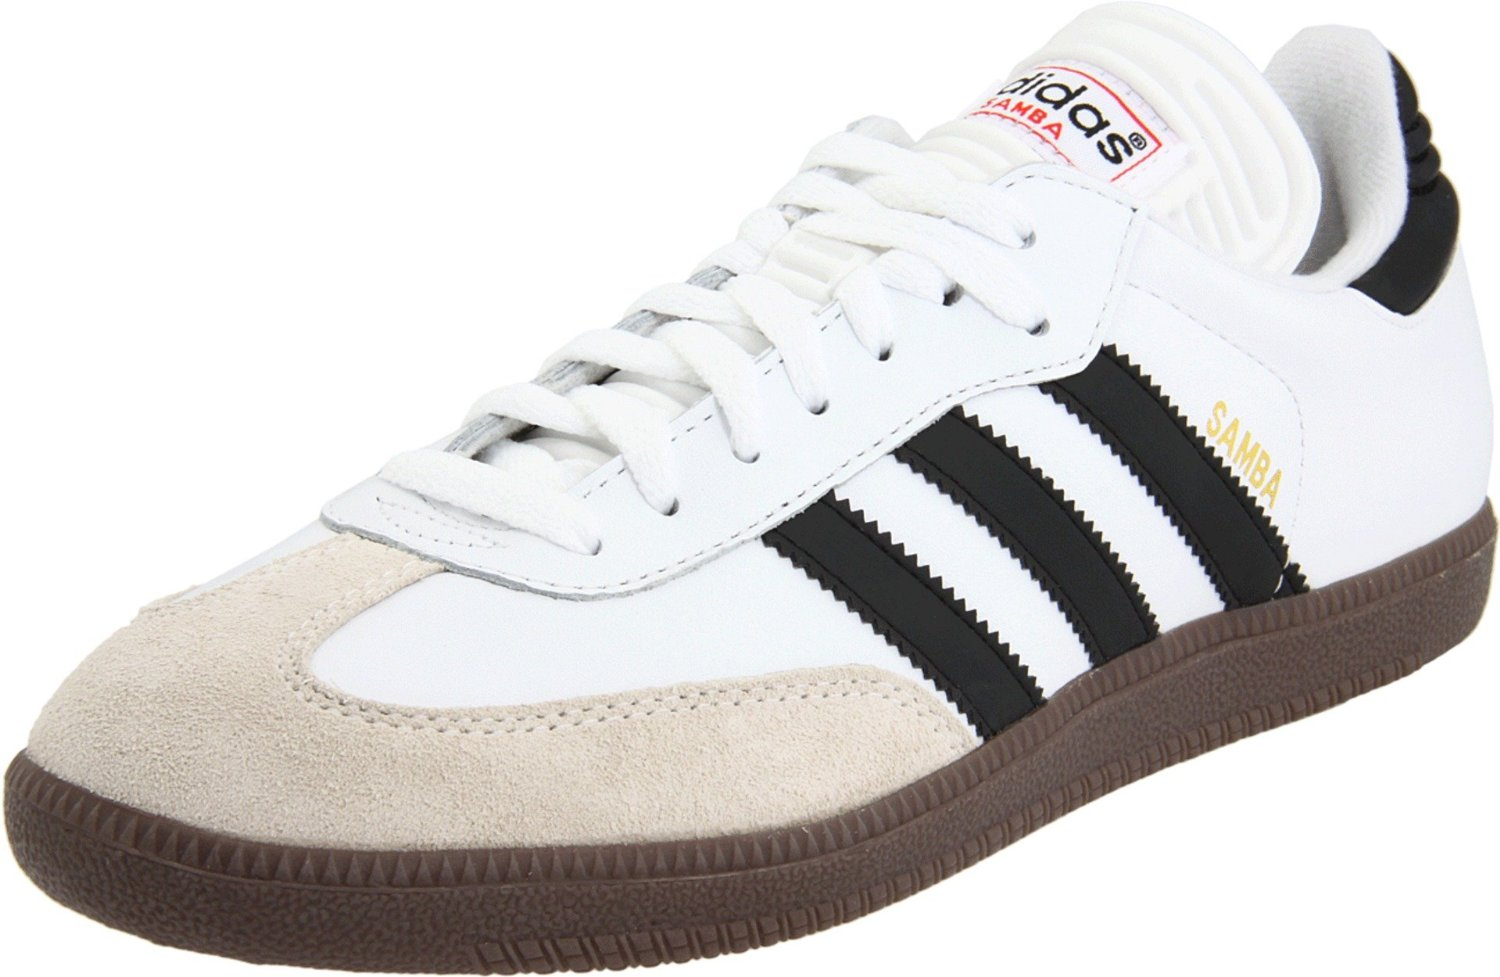 Indoor Soccer Shoes: Adidas Samba Classic - Review ...